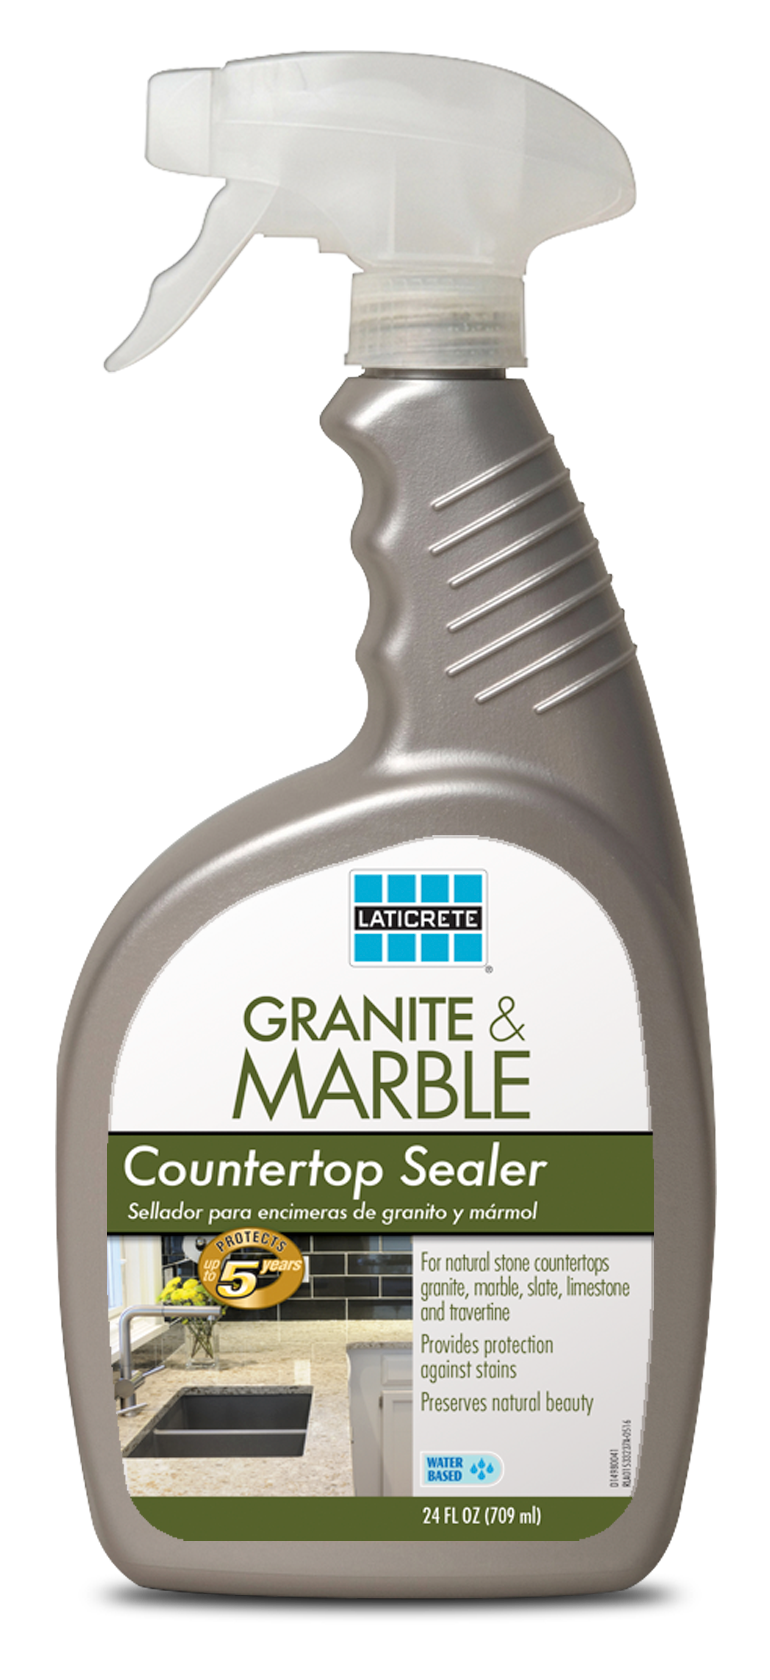 LATICRETE Granite & Marble Countertop Sealer